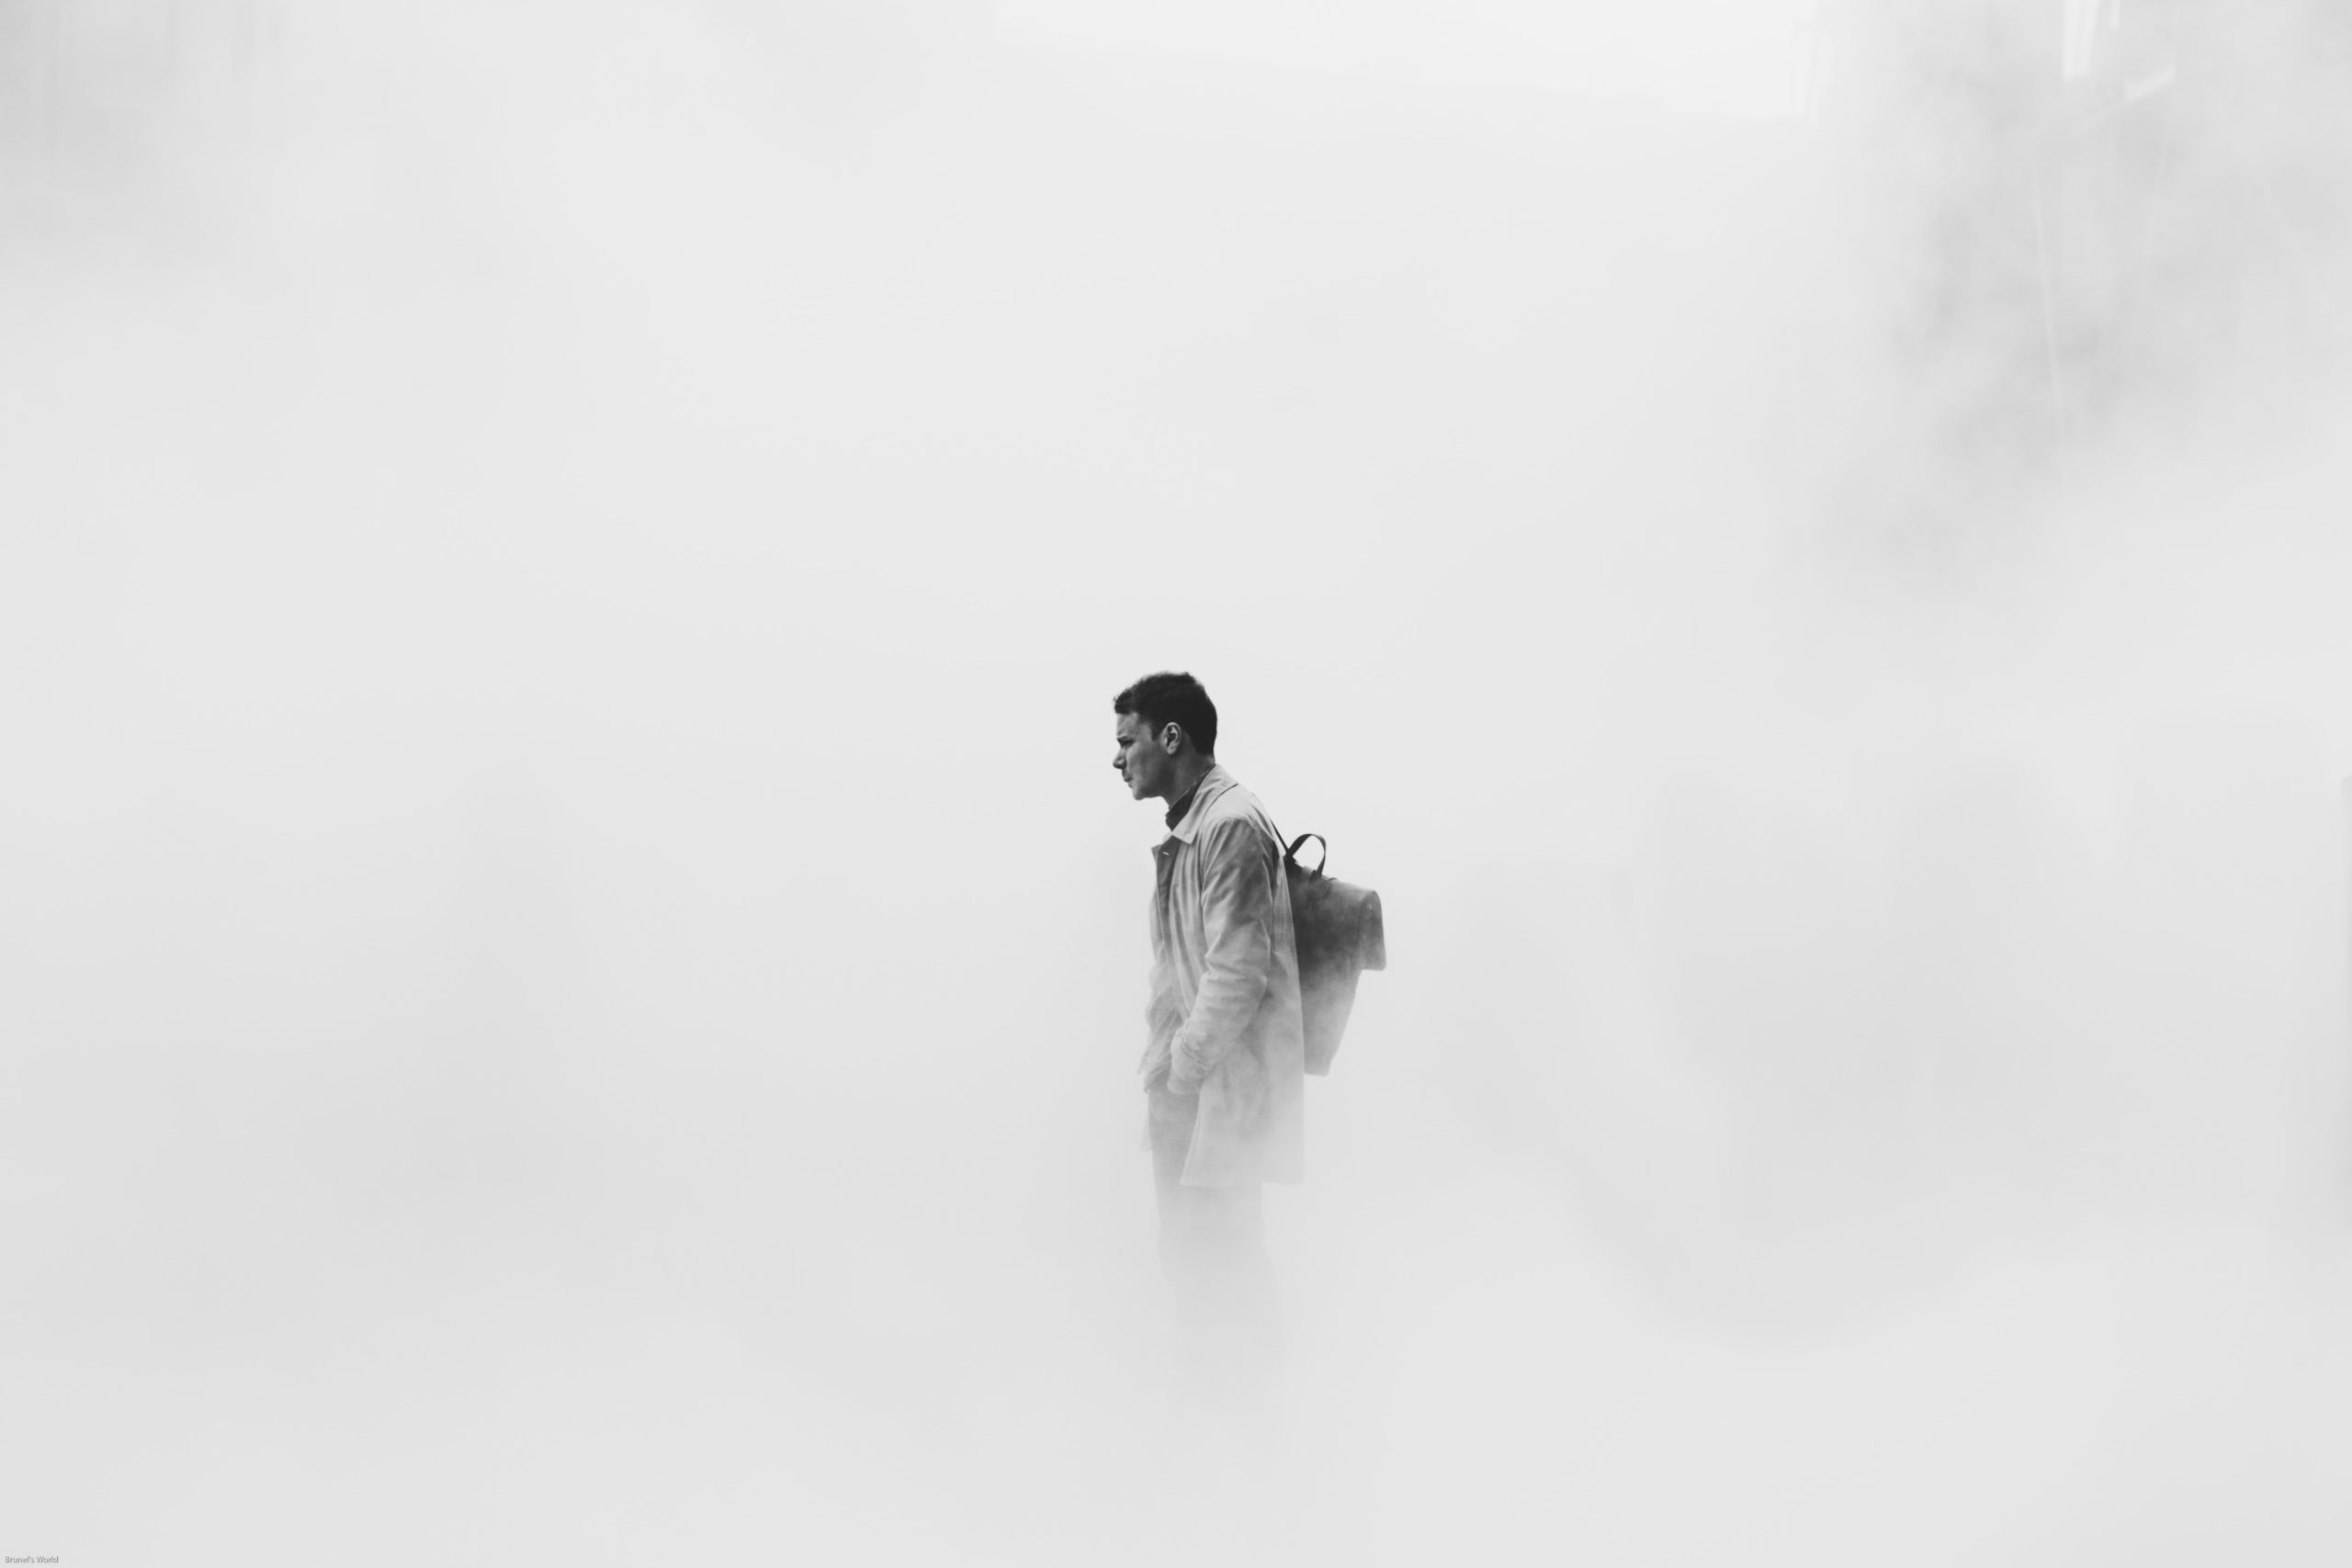 man in fog featured image for XRP article